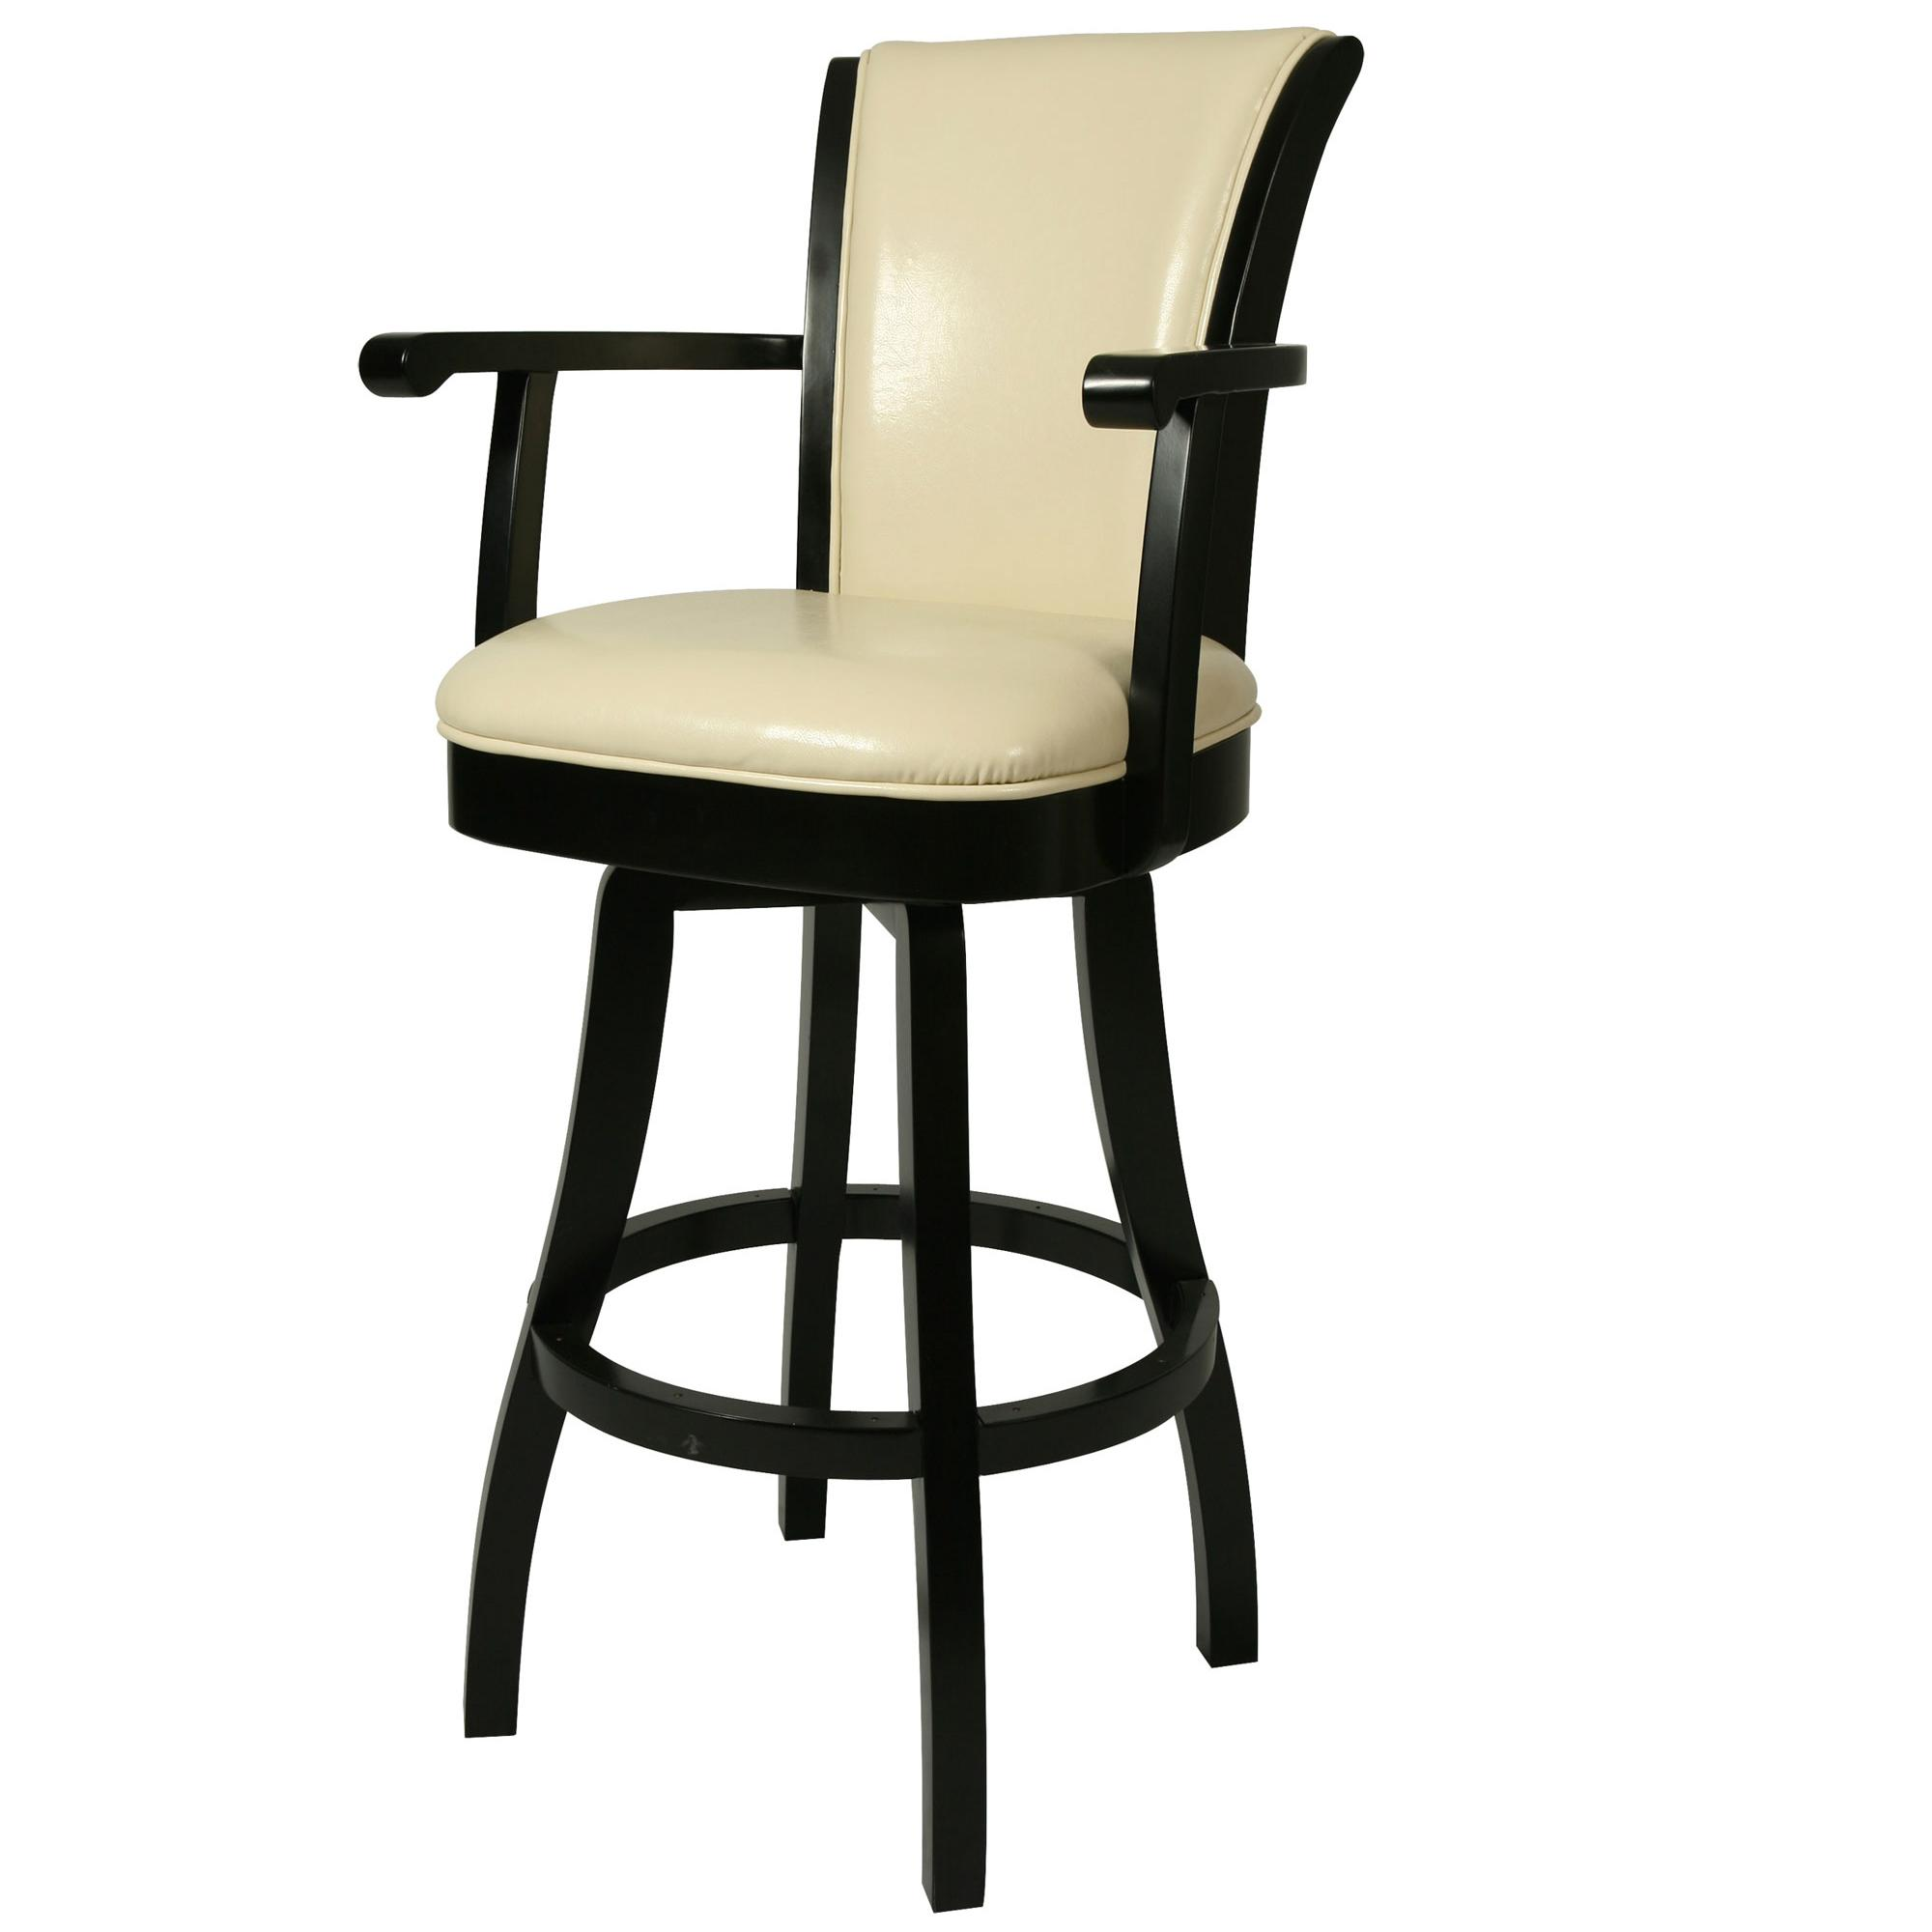 Pastel Minson Wood Barstools Glenwood Swivel Barstool with Arms in Cream Leather AHFA Bar Stool Dealer Locator